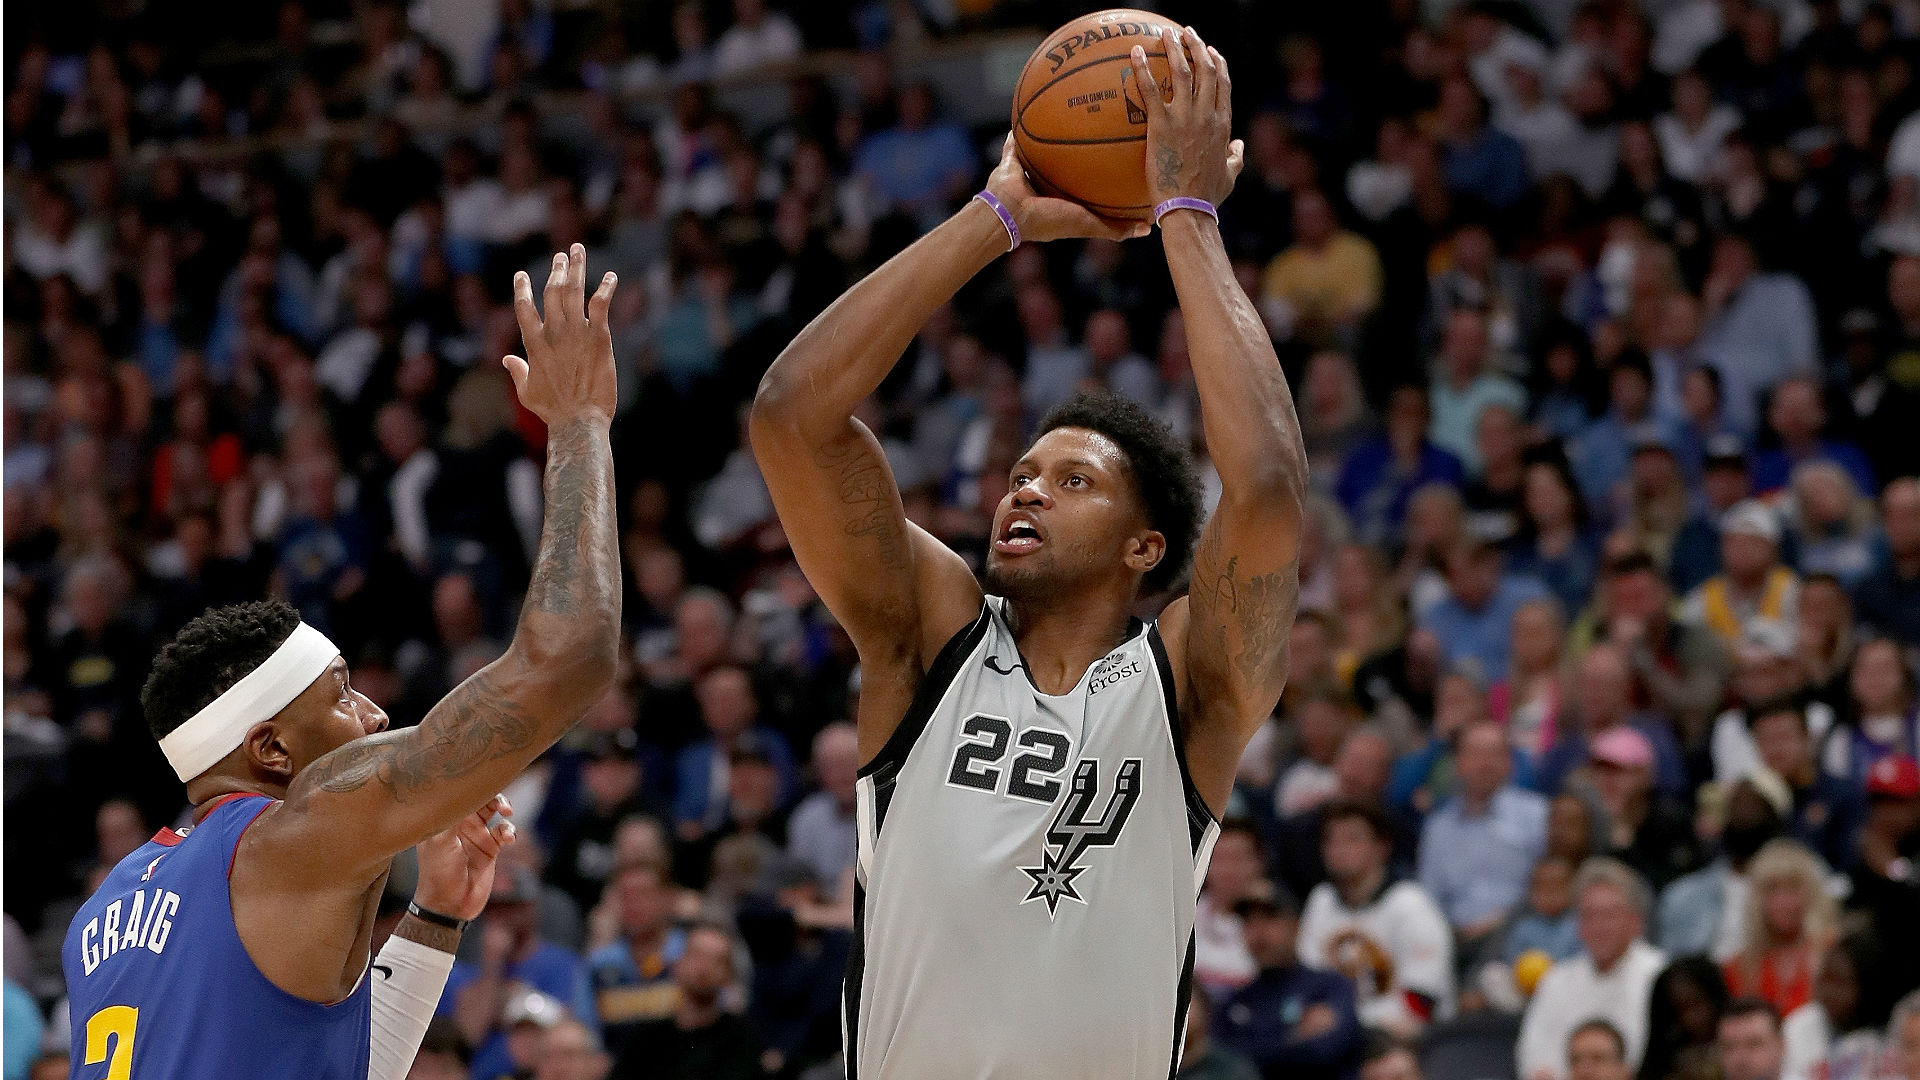 Spurs 'hoping' to bring back Gay, says Popovich